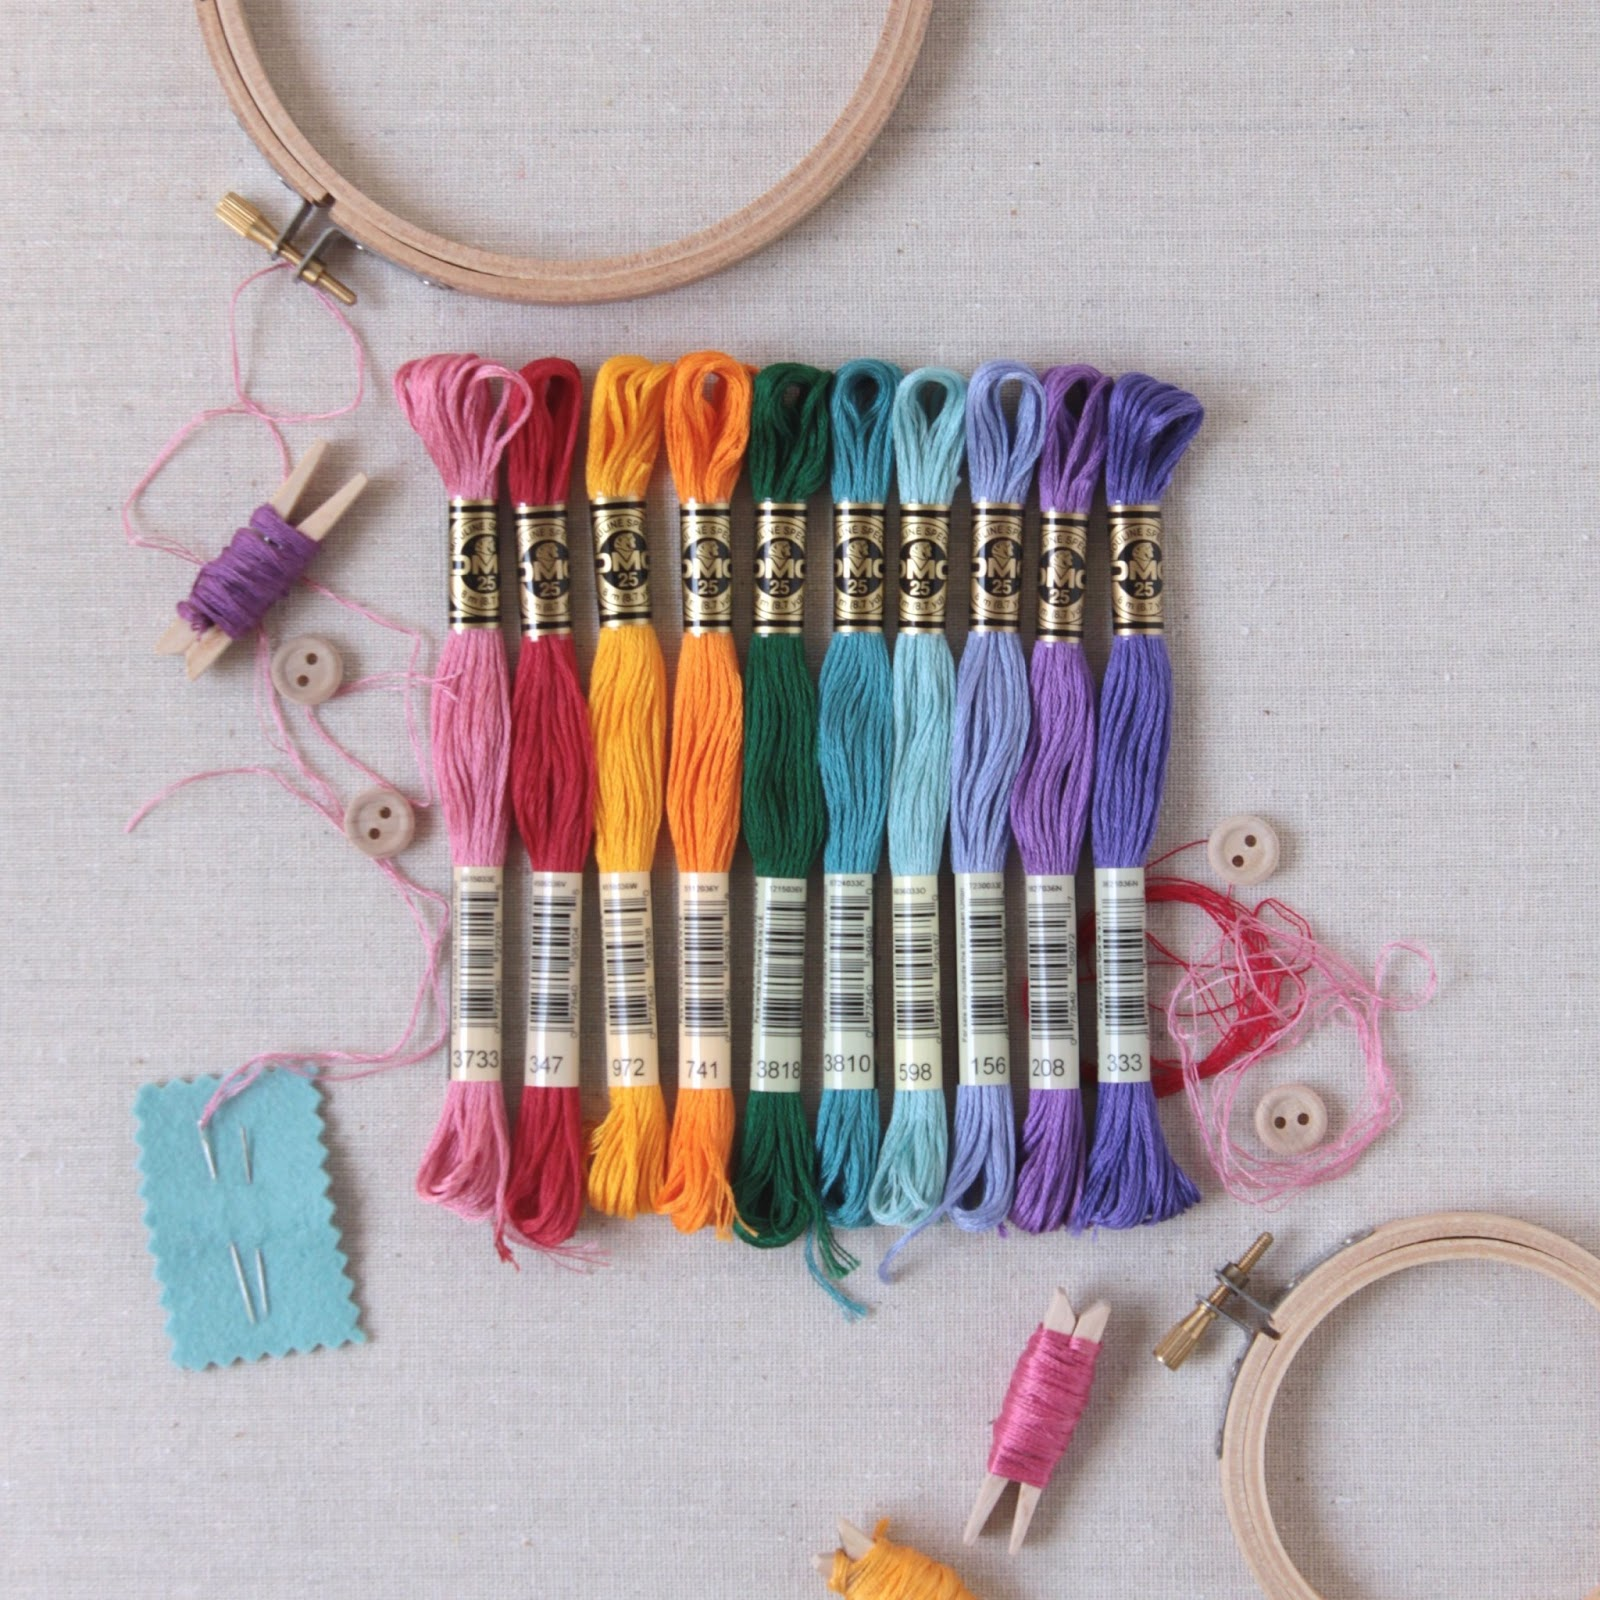 Benzie A Fanfare Of Felt. Embroidery Floss